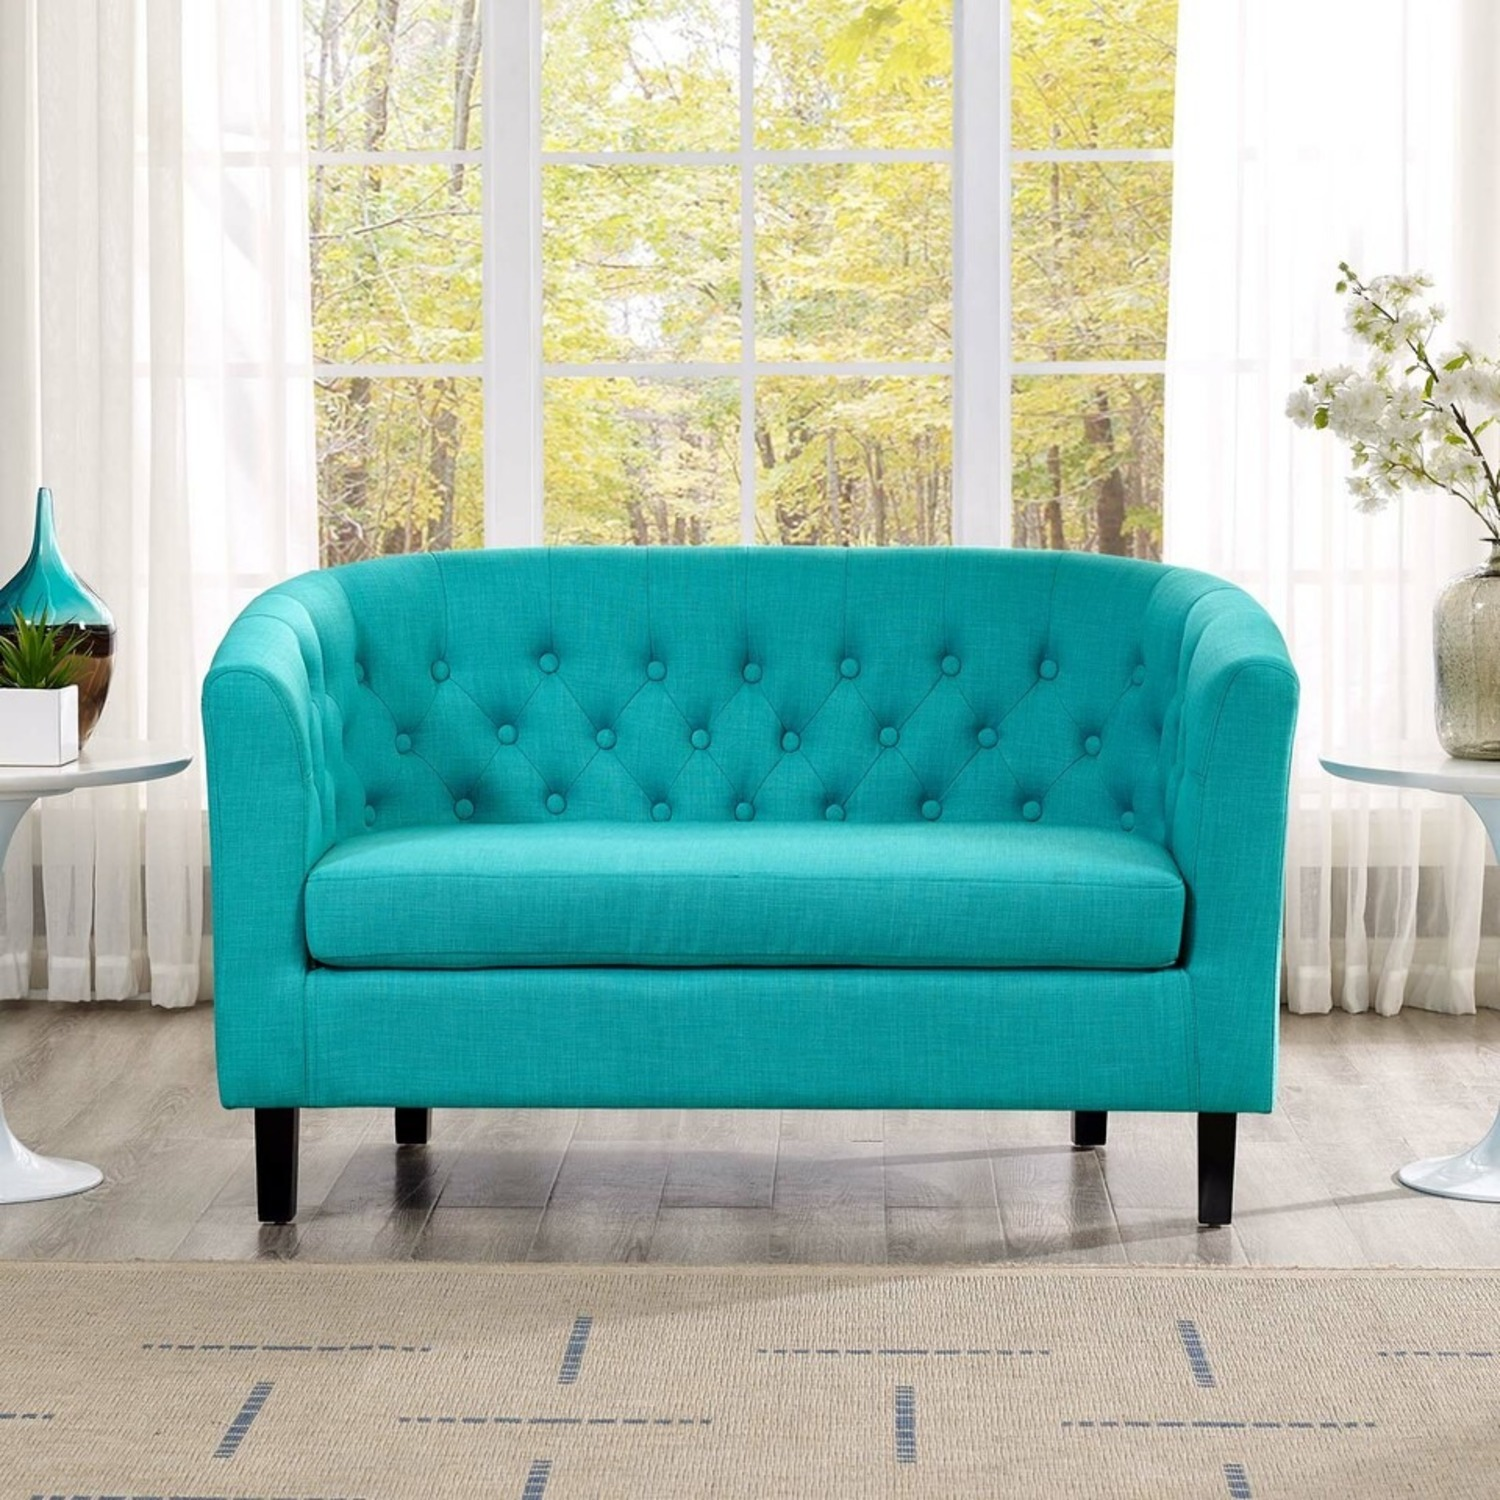 Modern Loveseat In Pure Water Fabric Upholstery - image-3